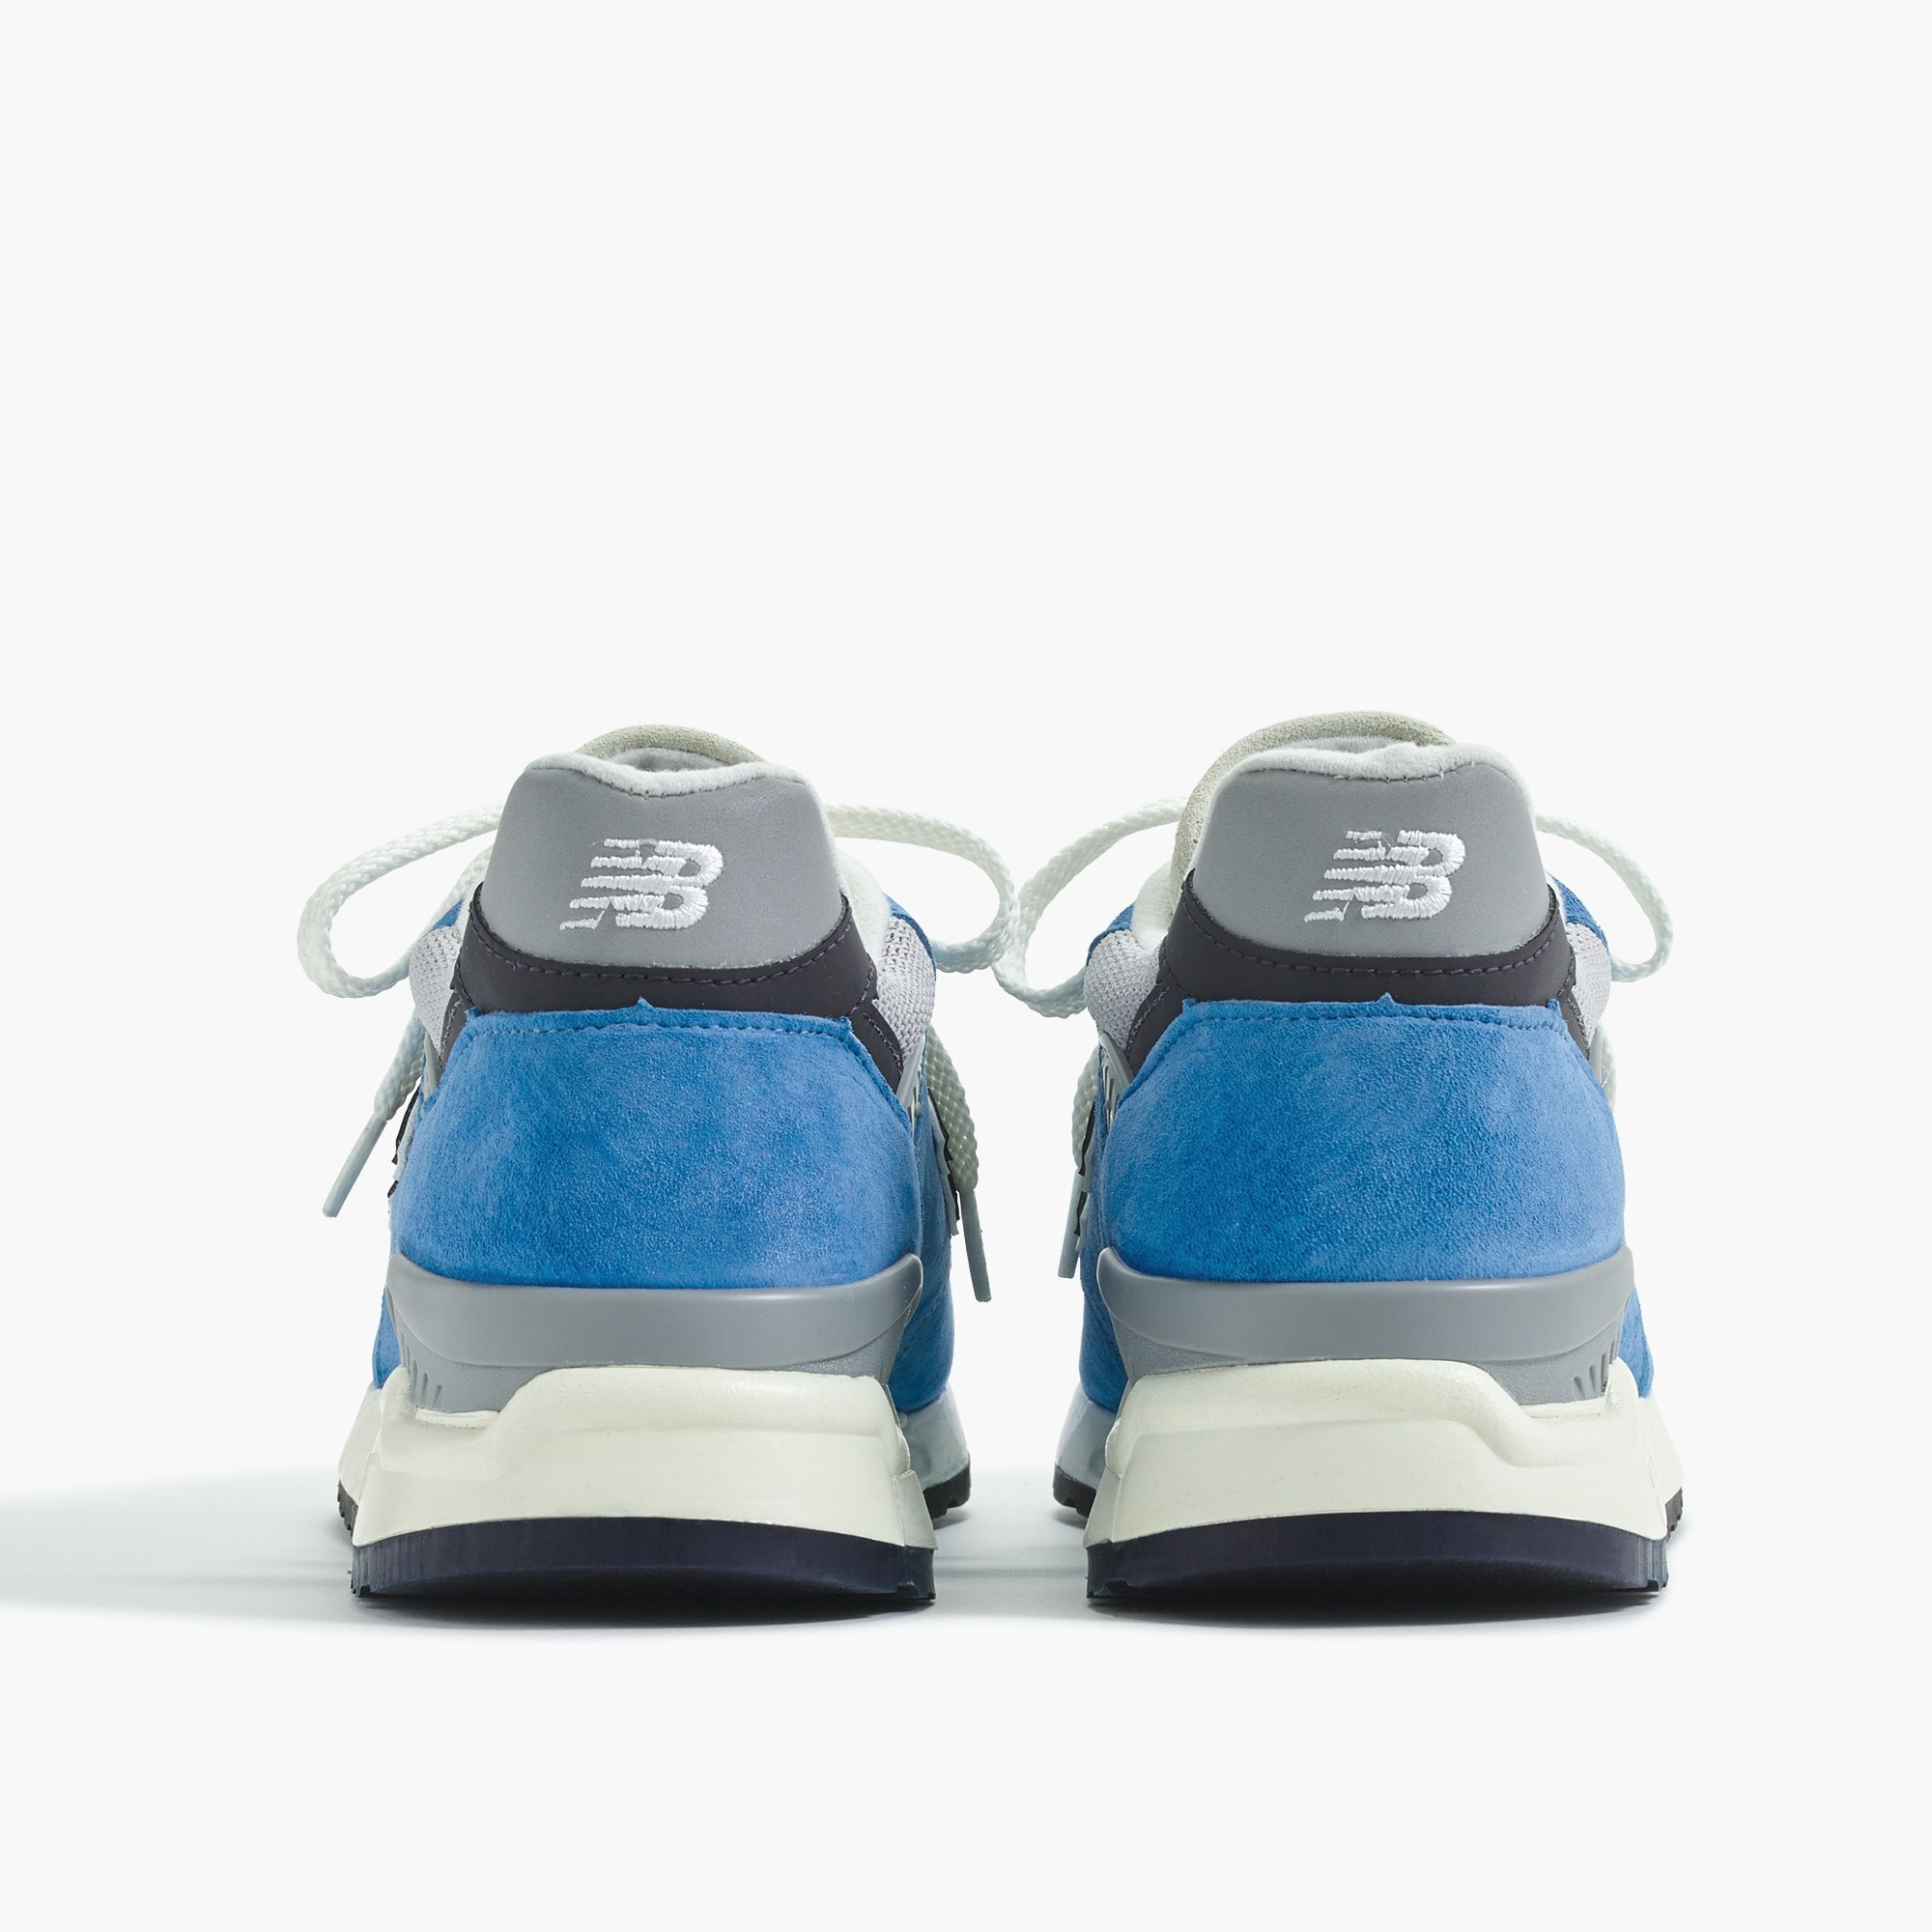 Image 1 for New Balance® for J.Crew 998 sneakers in bright blue